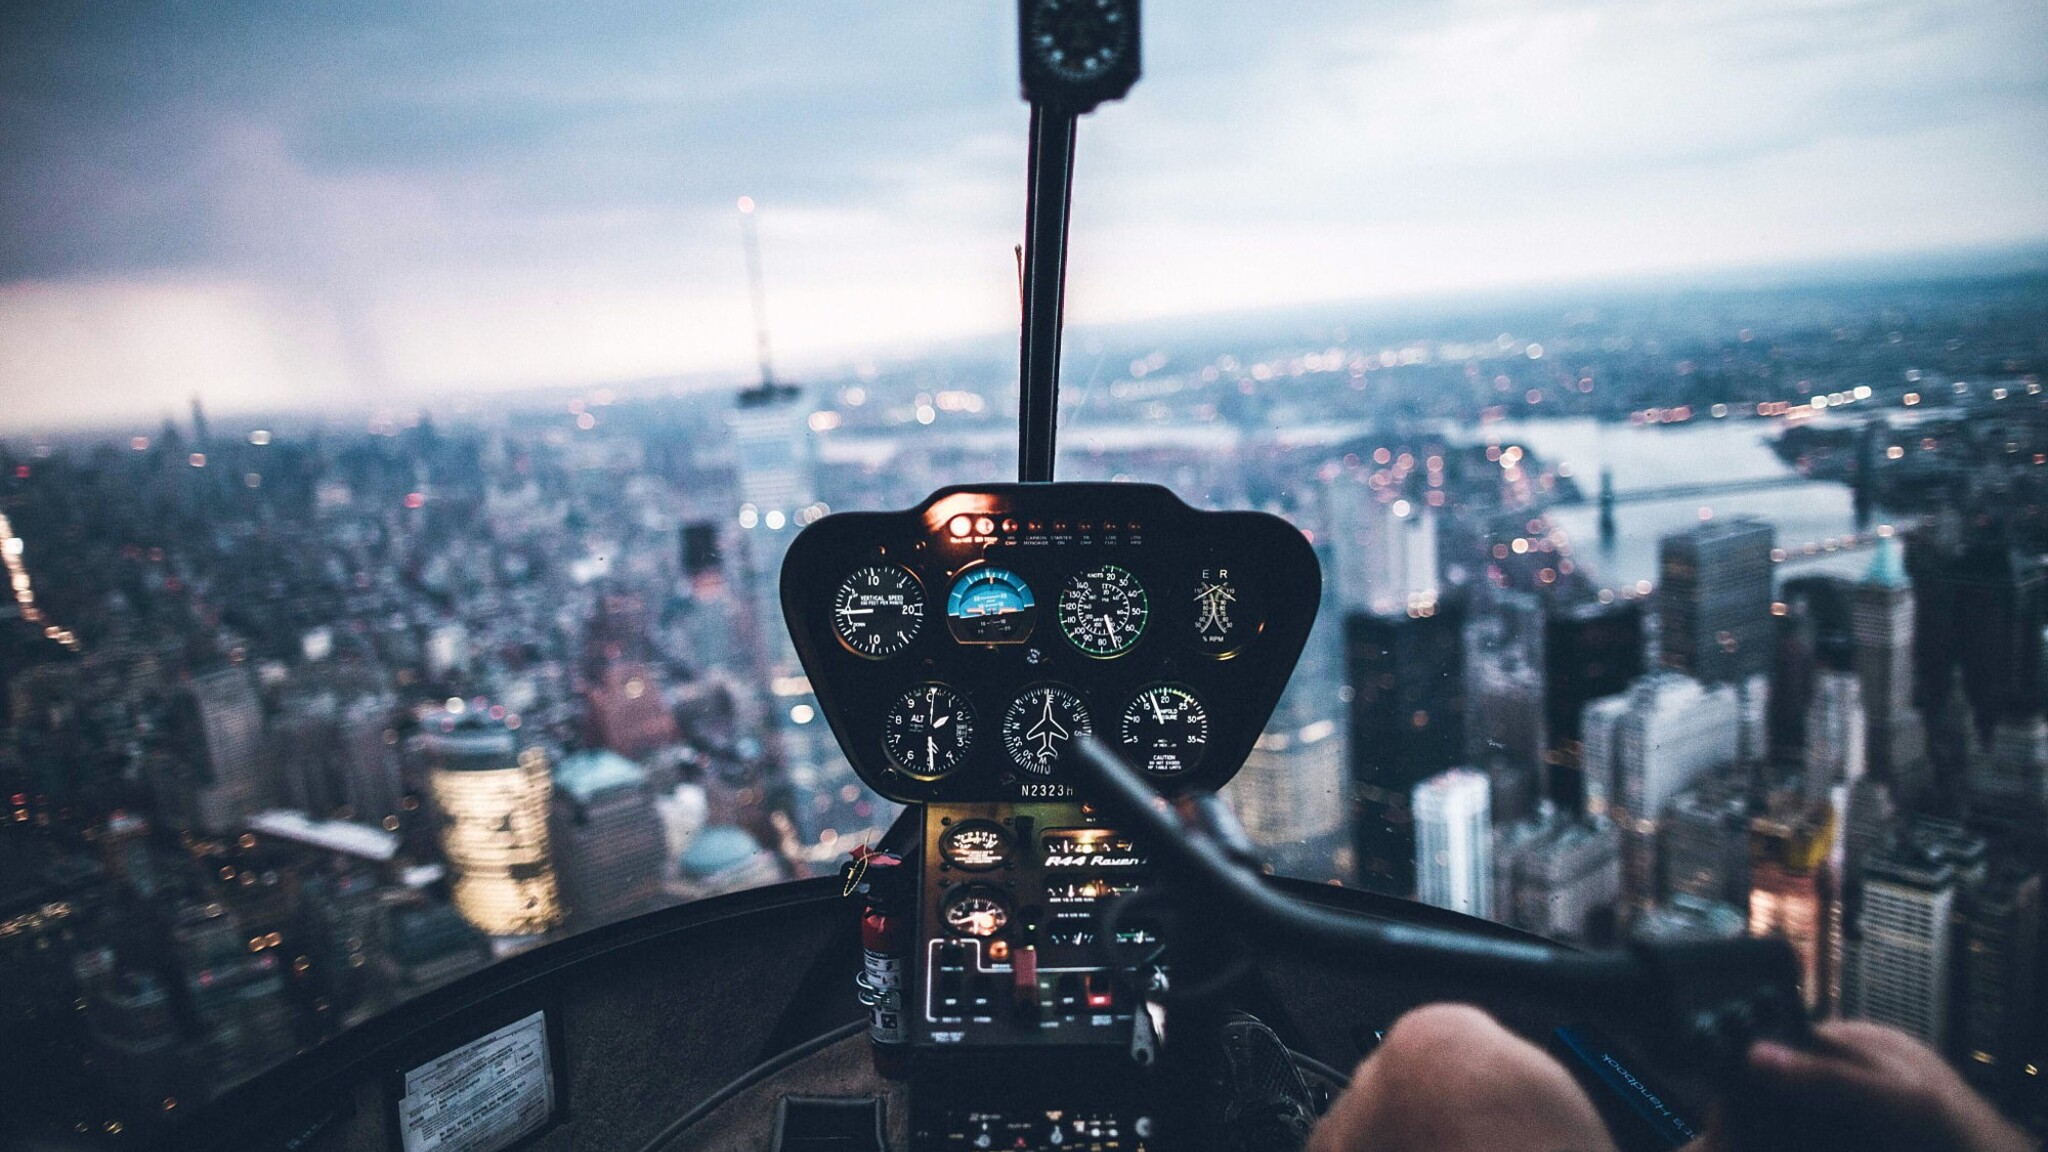 2048x1152 helicopter inside view 2048x1152 resolution hd